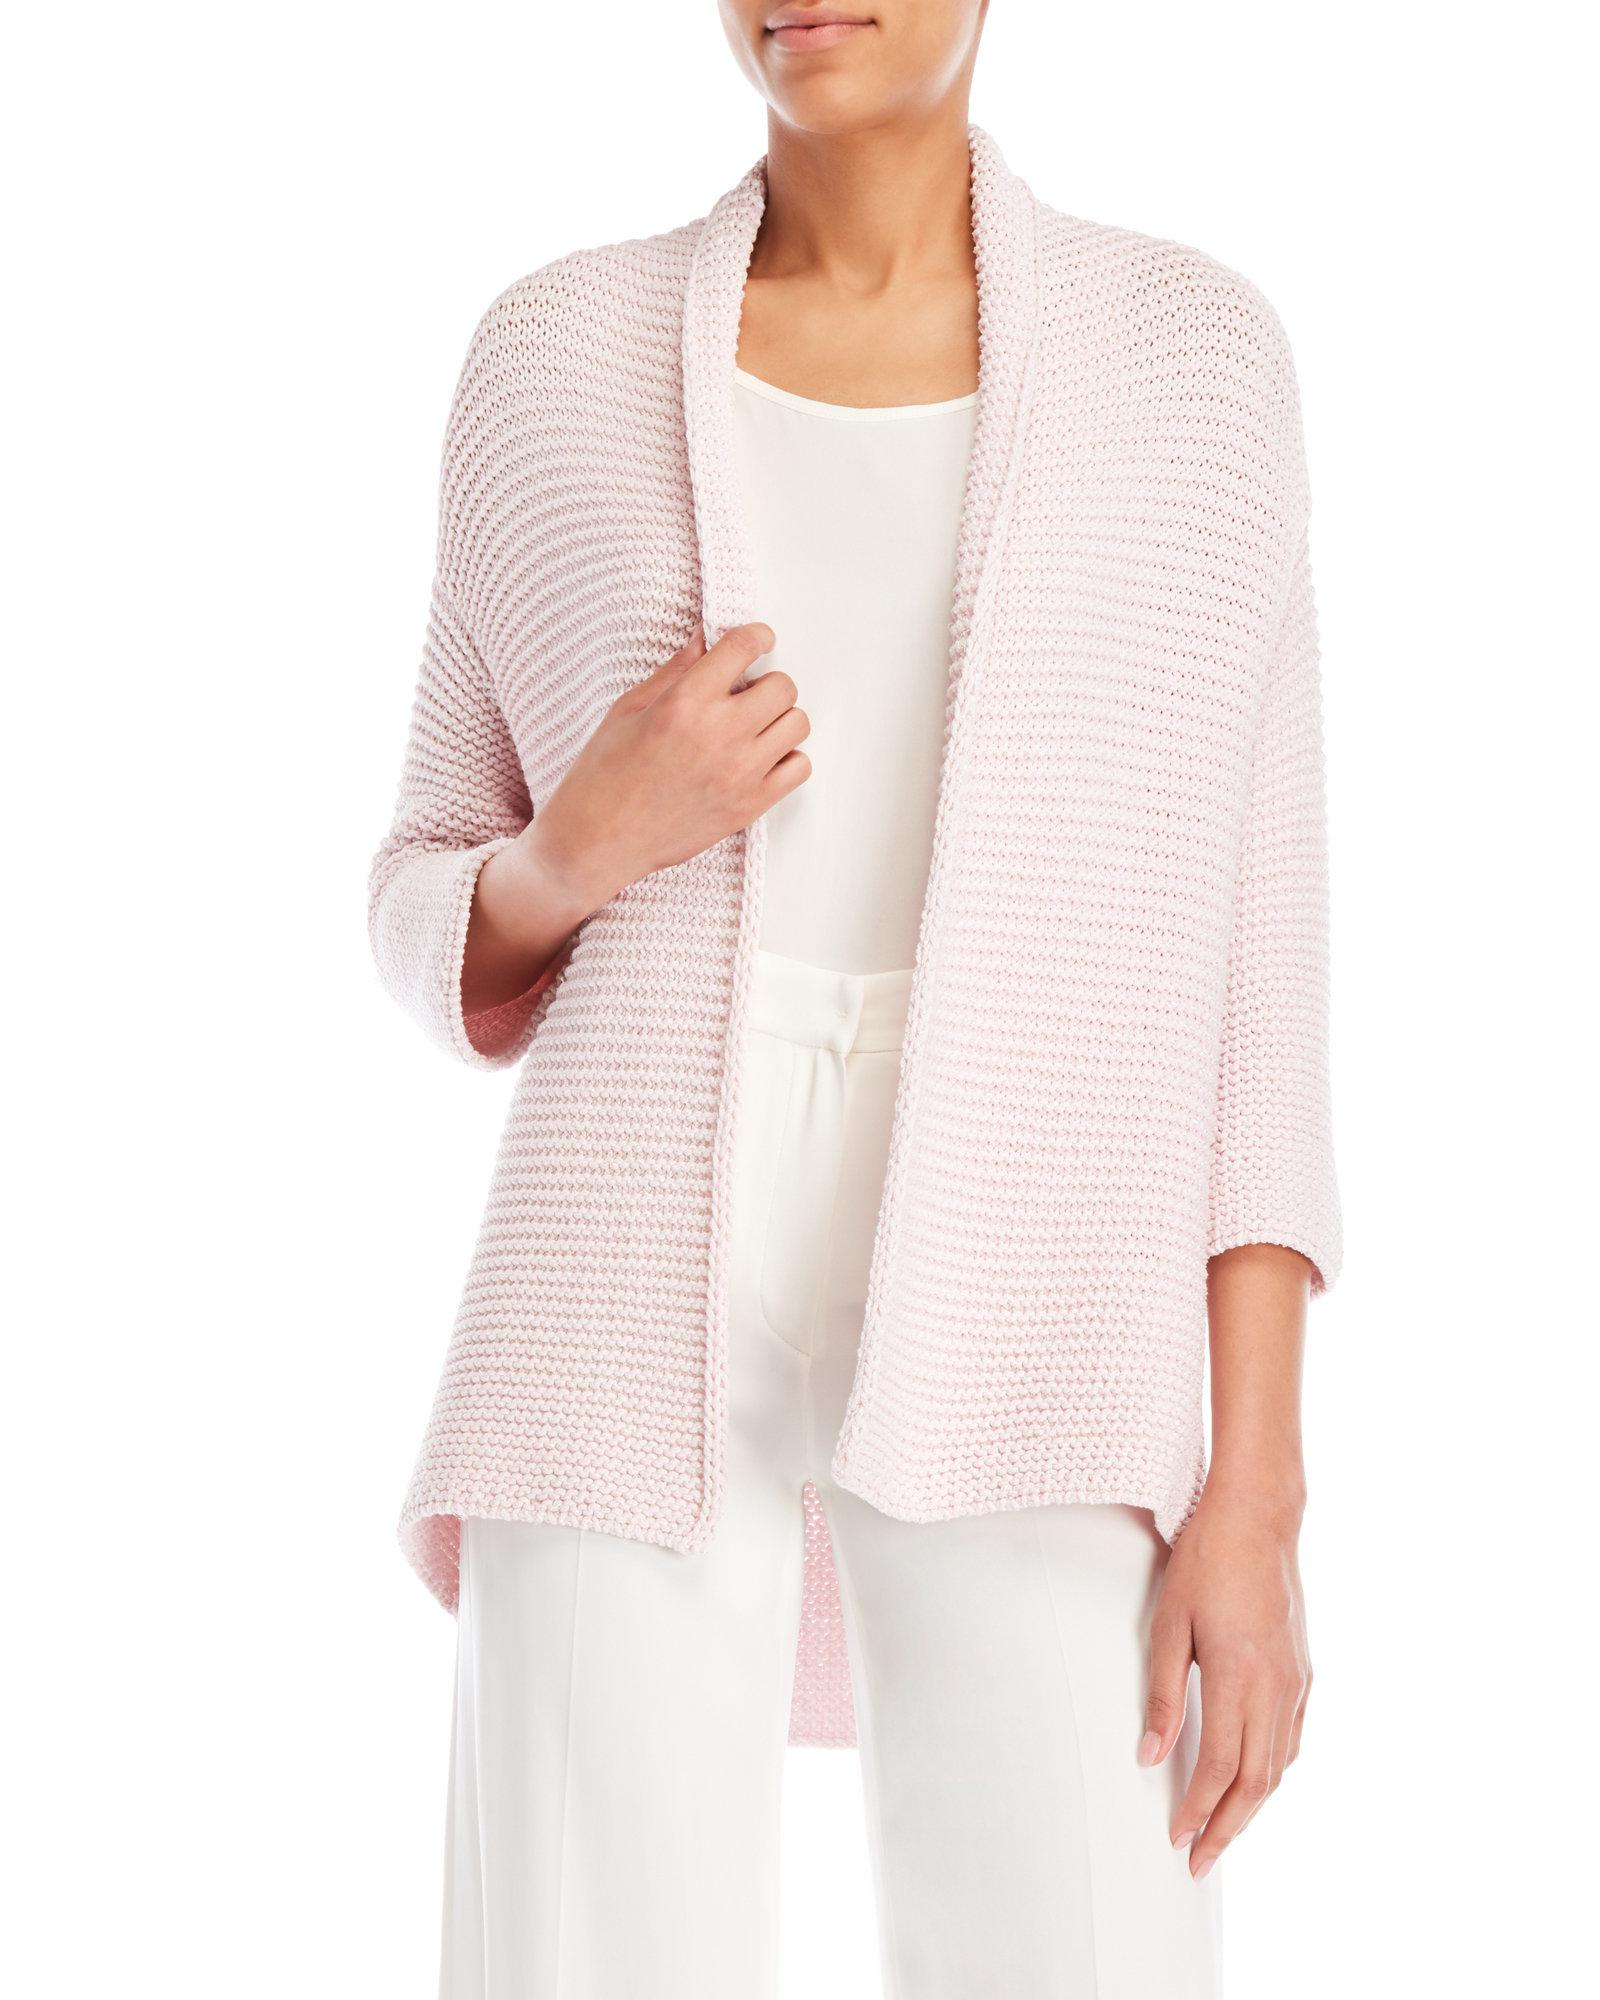 051e934eace6a Lyst - Les Copains Pink Lurex Open Cardigan in Pink